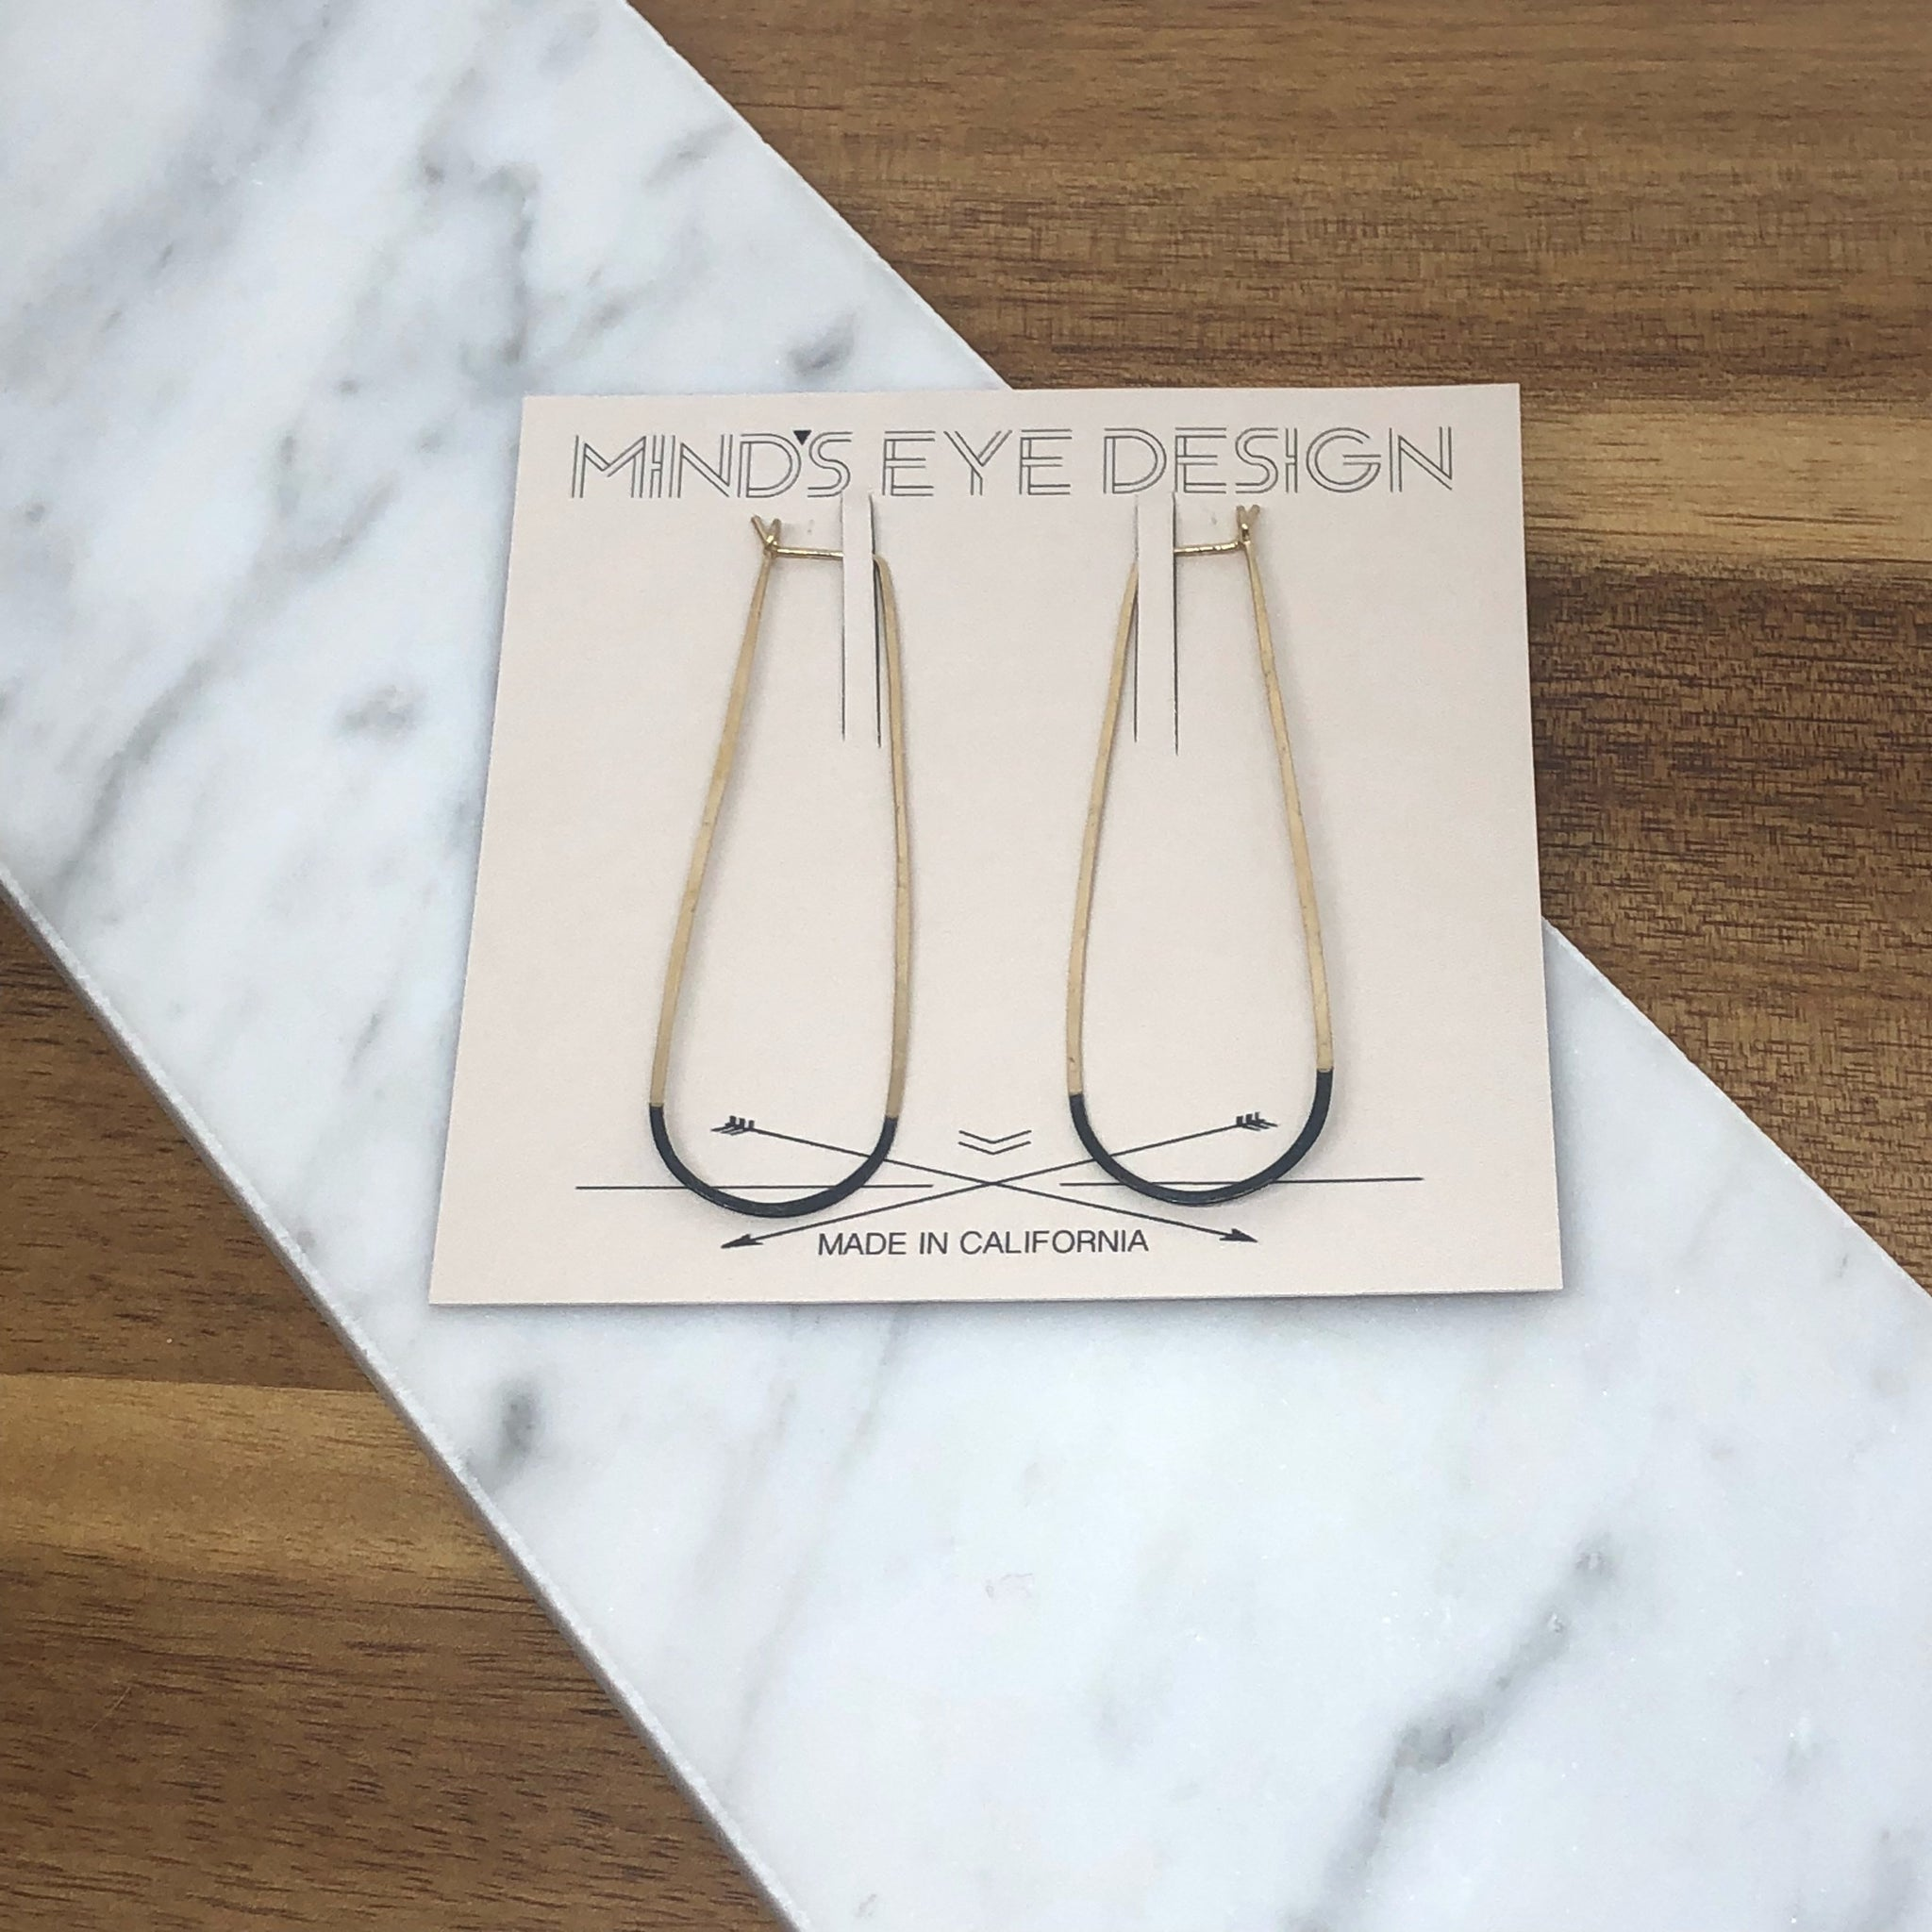 Mind's Eye Design - Mired Metal Earrings - Long Elipse